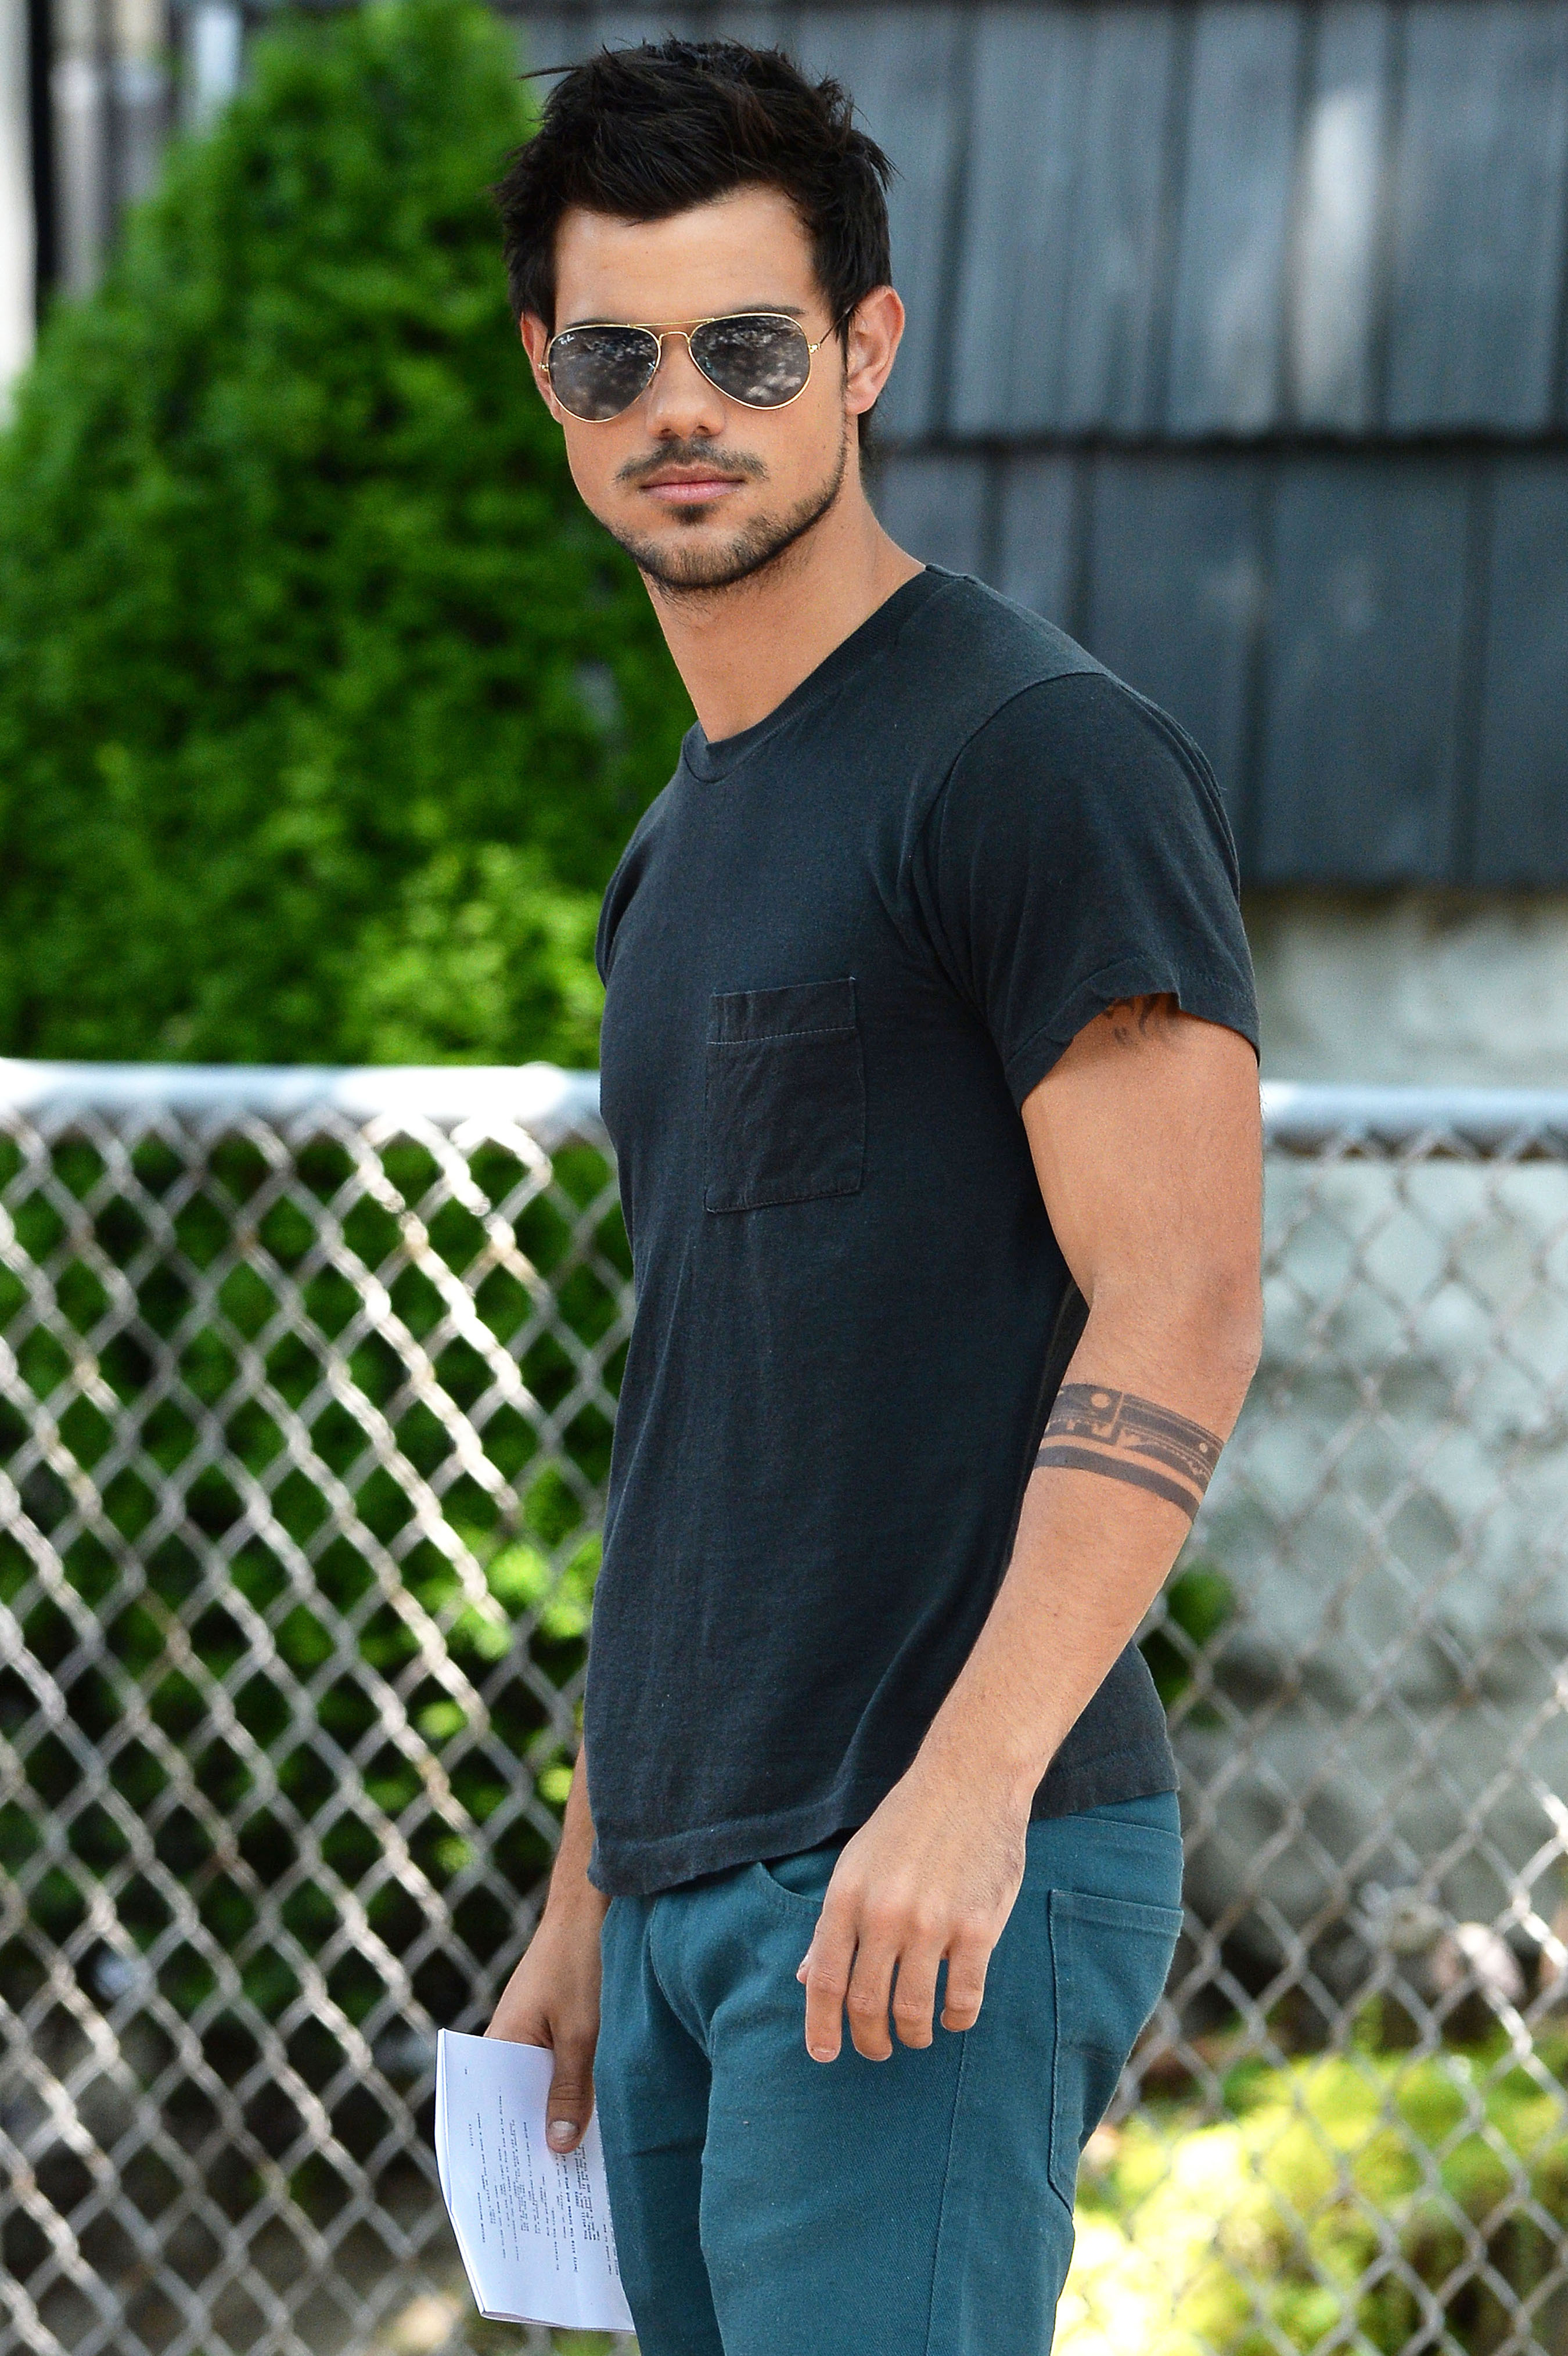 Taylor Lautner Cool Dude Wallpaper